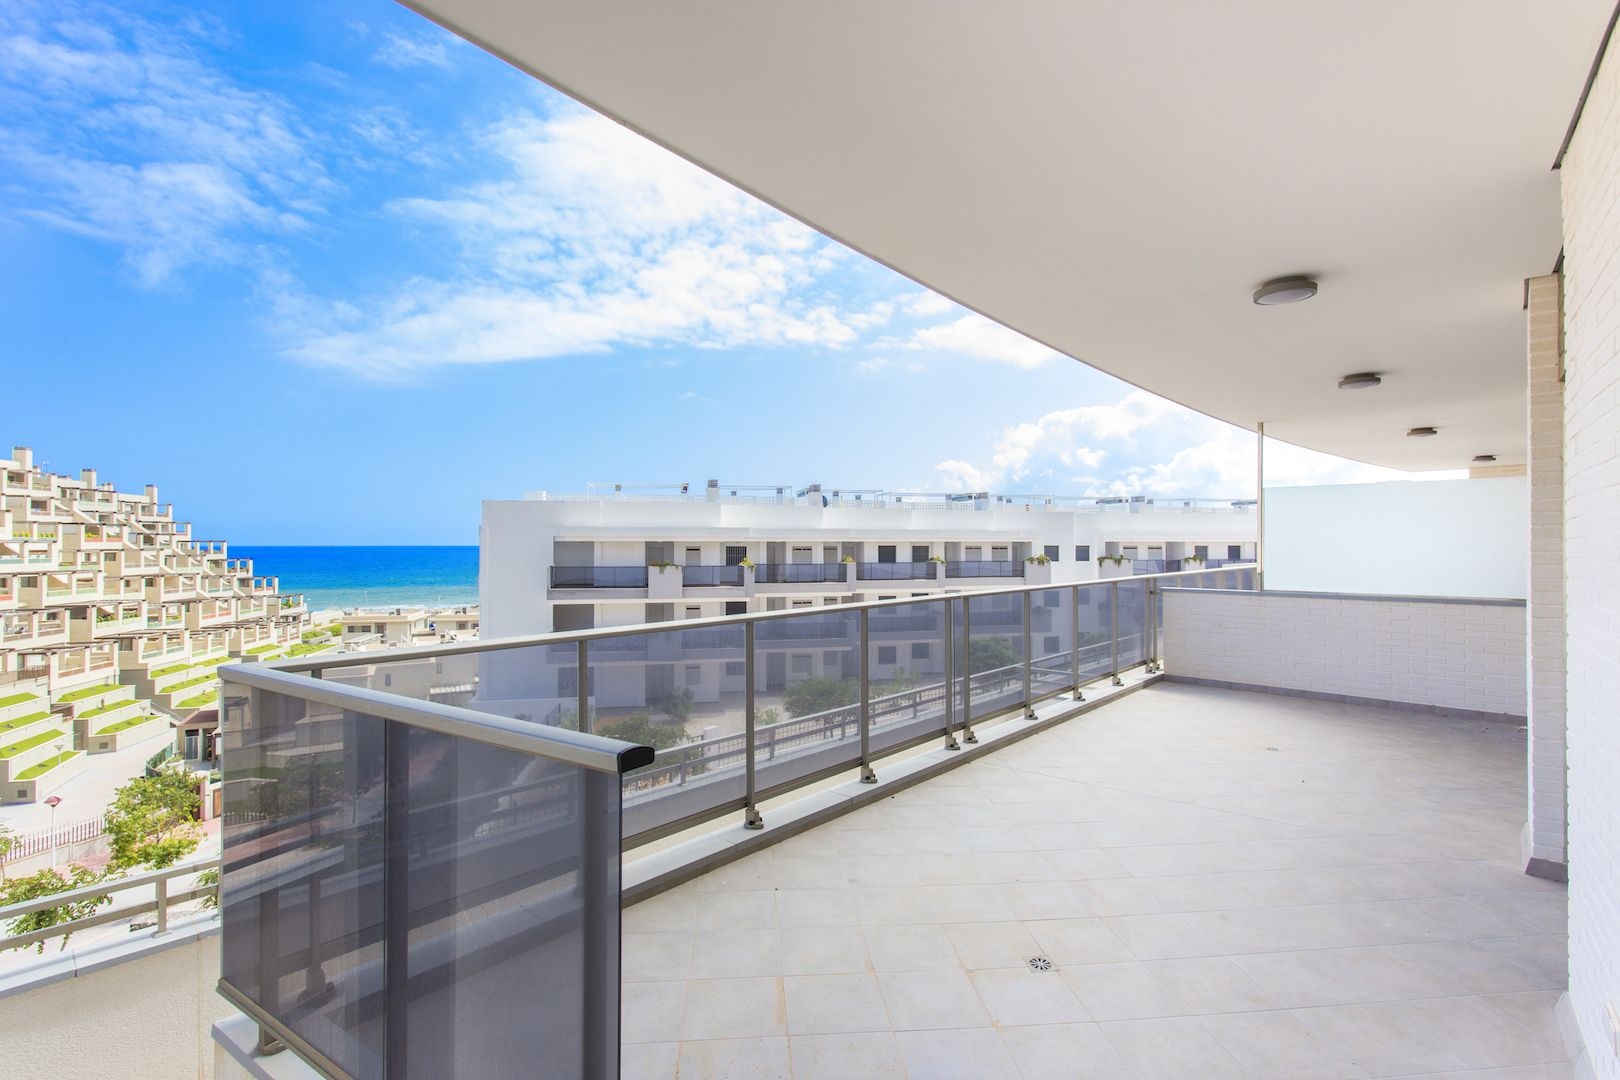 Flats and penthouses of 2, 3 and 4 bedrooms a few meters from the sea in Arenales del Sol. 17